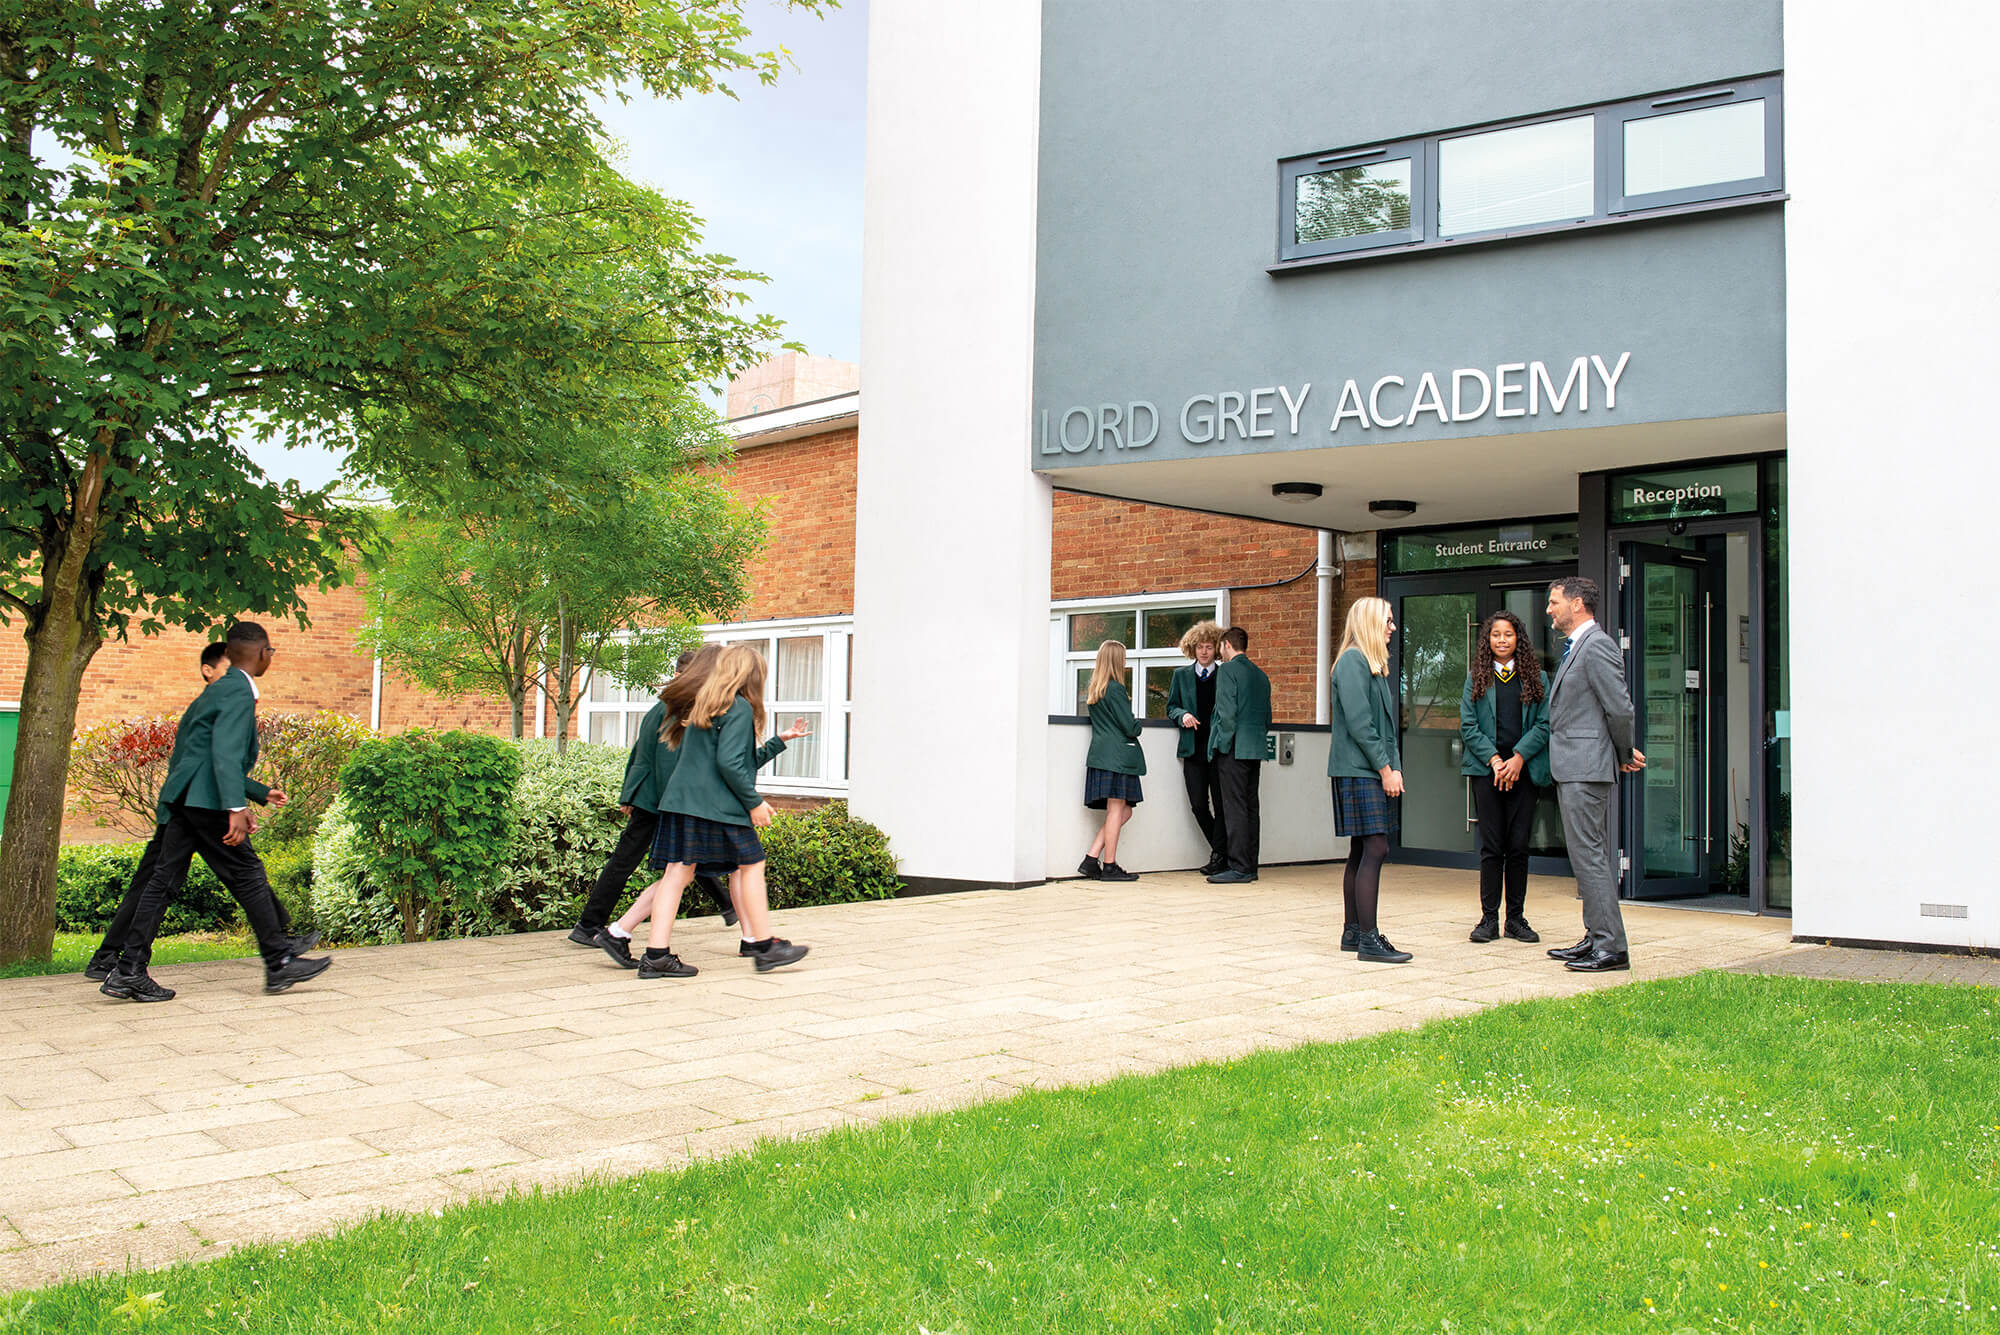 Students being greeted by the Principal at Lord Grey Academy